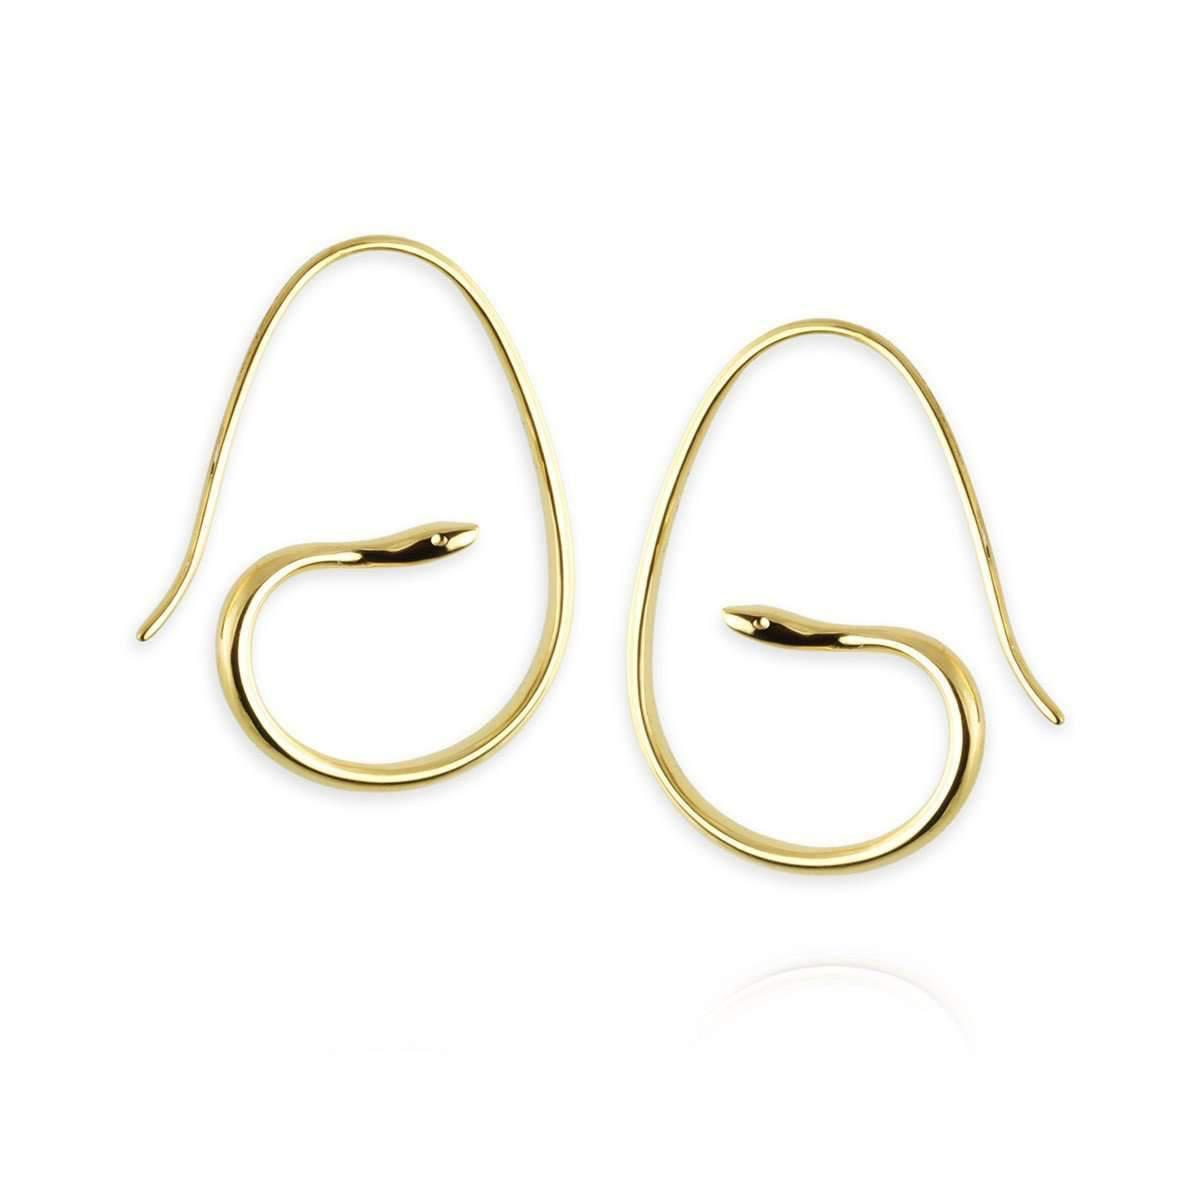 Jana Reinhardt Gold Plated Silver Snake Hoop Earrings With Black Diamonds